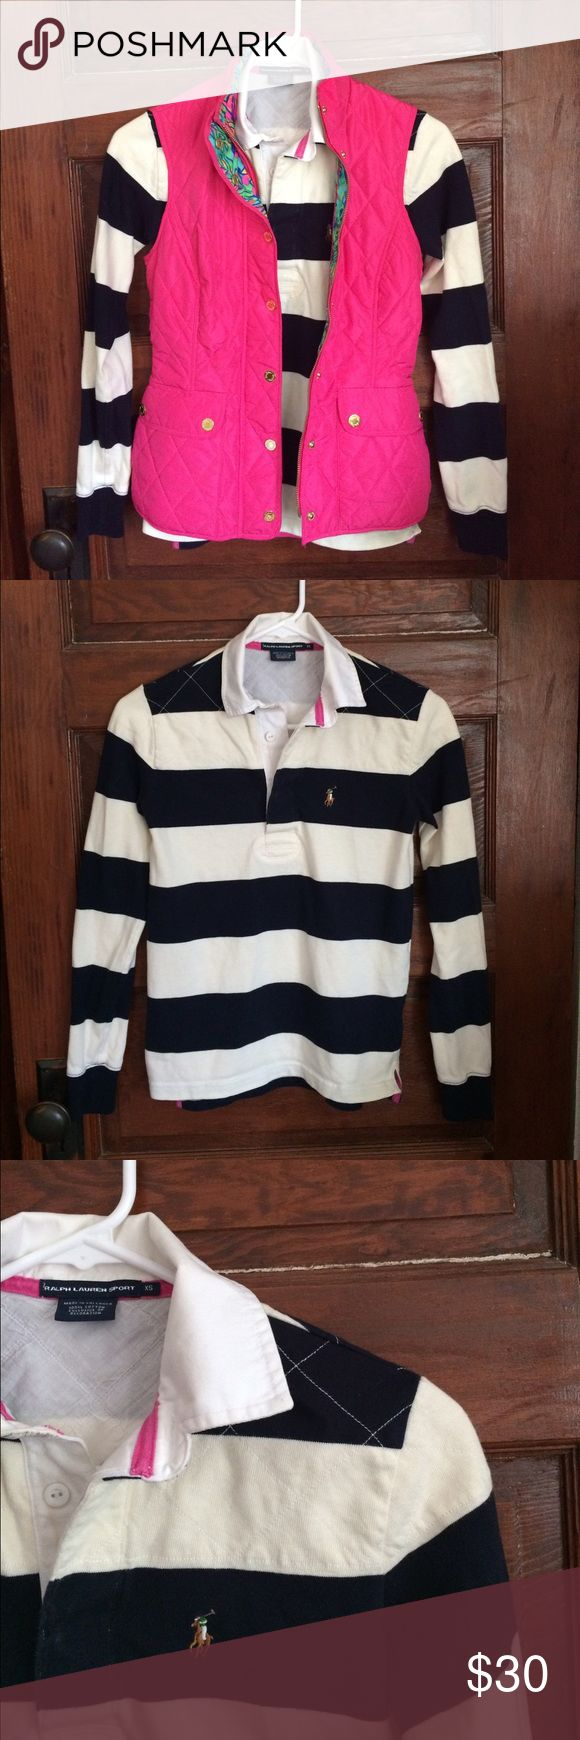 XS Ralph Lauren Sport Long-Sleeved Rugby Shirt 100% cotton. White and navy. Excellent used condition; only imperfection is a small stain by the button, which is covered when the shirt is buttoned halfway. Perfect addition to a casual fall/winter outfit! It goes well with a vest or by itself - and its preppy, soft, and cozy. Ralph Lauren Tops